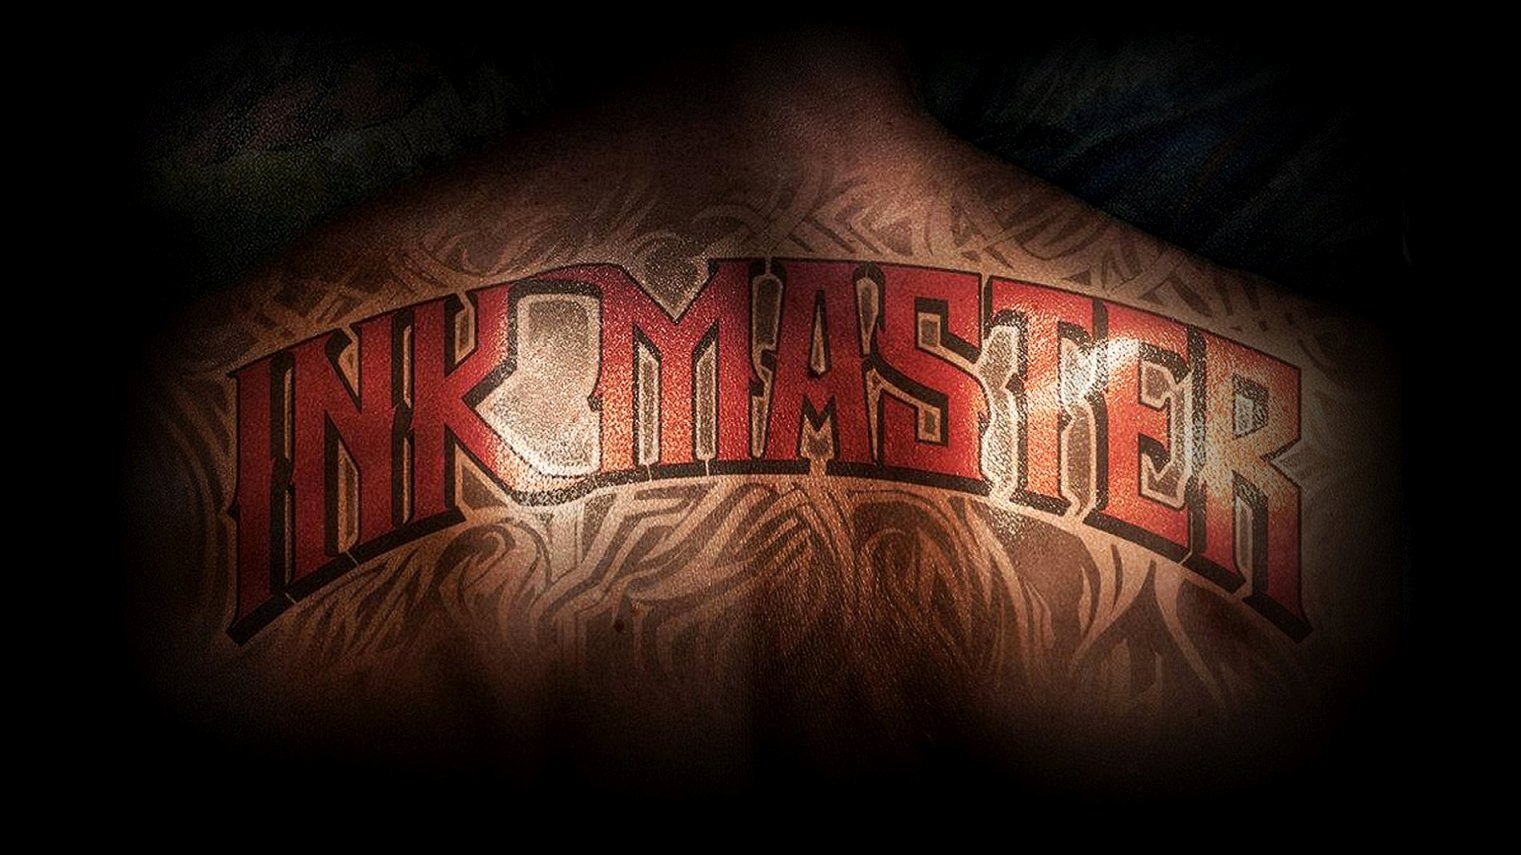 Ink Master season 11 air rime